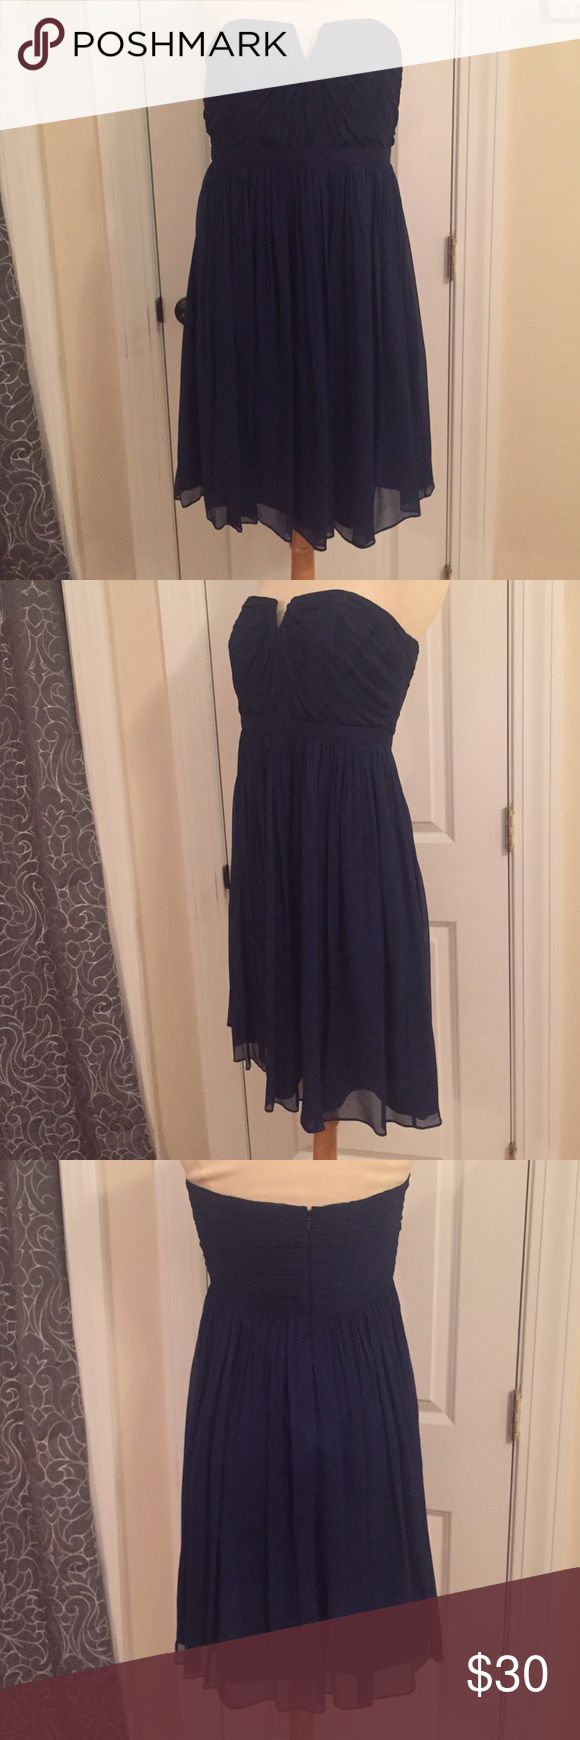 Navy chiffon dress Strapless with built in bra. J.Crew knee length lined chiffon dress. Flattering fit. Worn once. J. Crew Dresses Midi